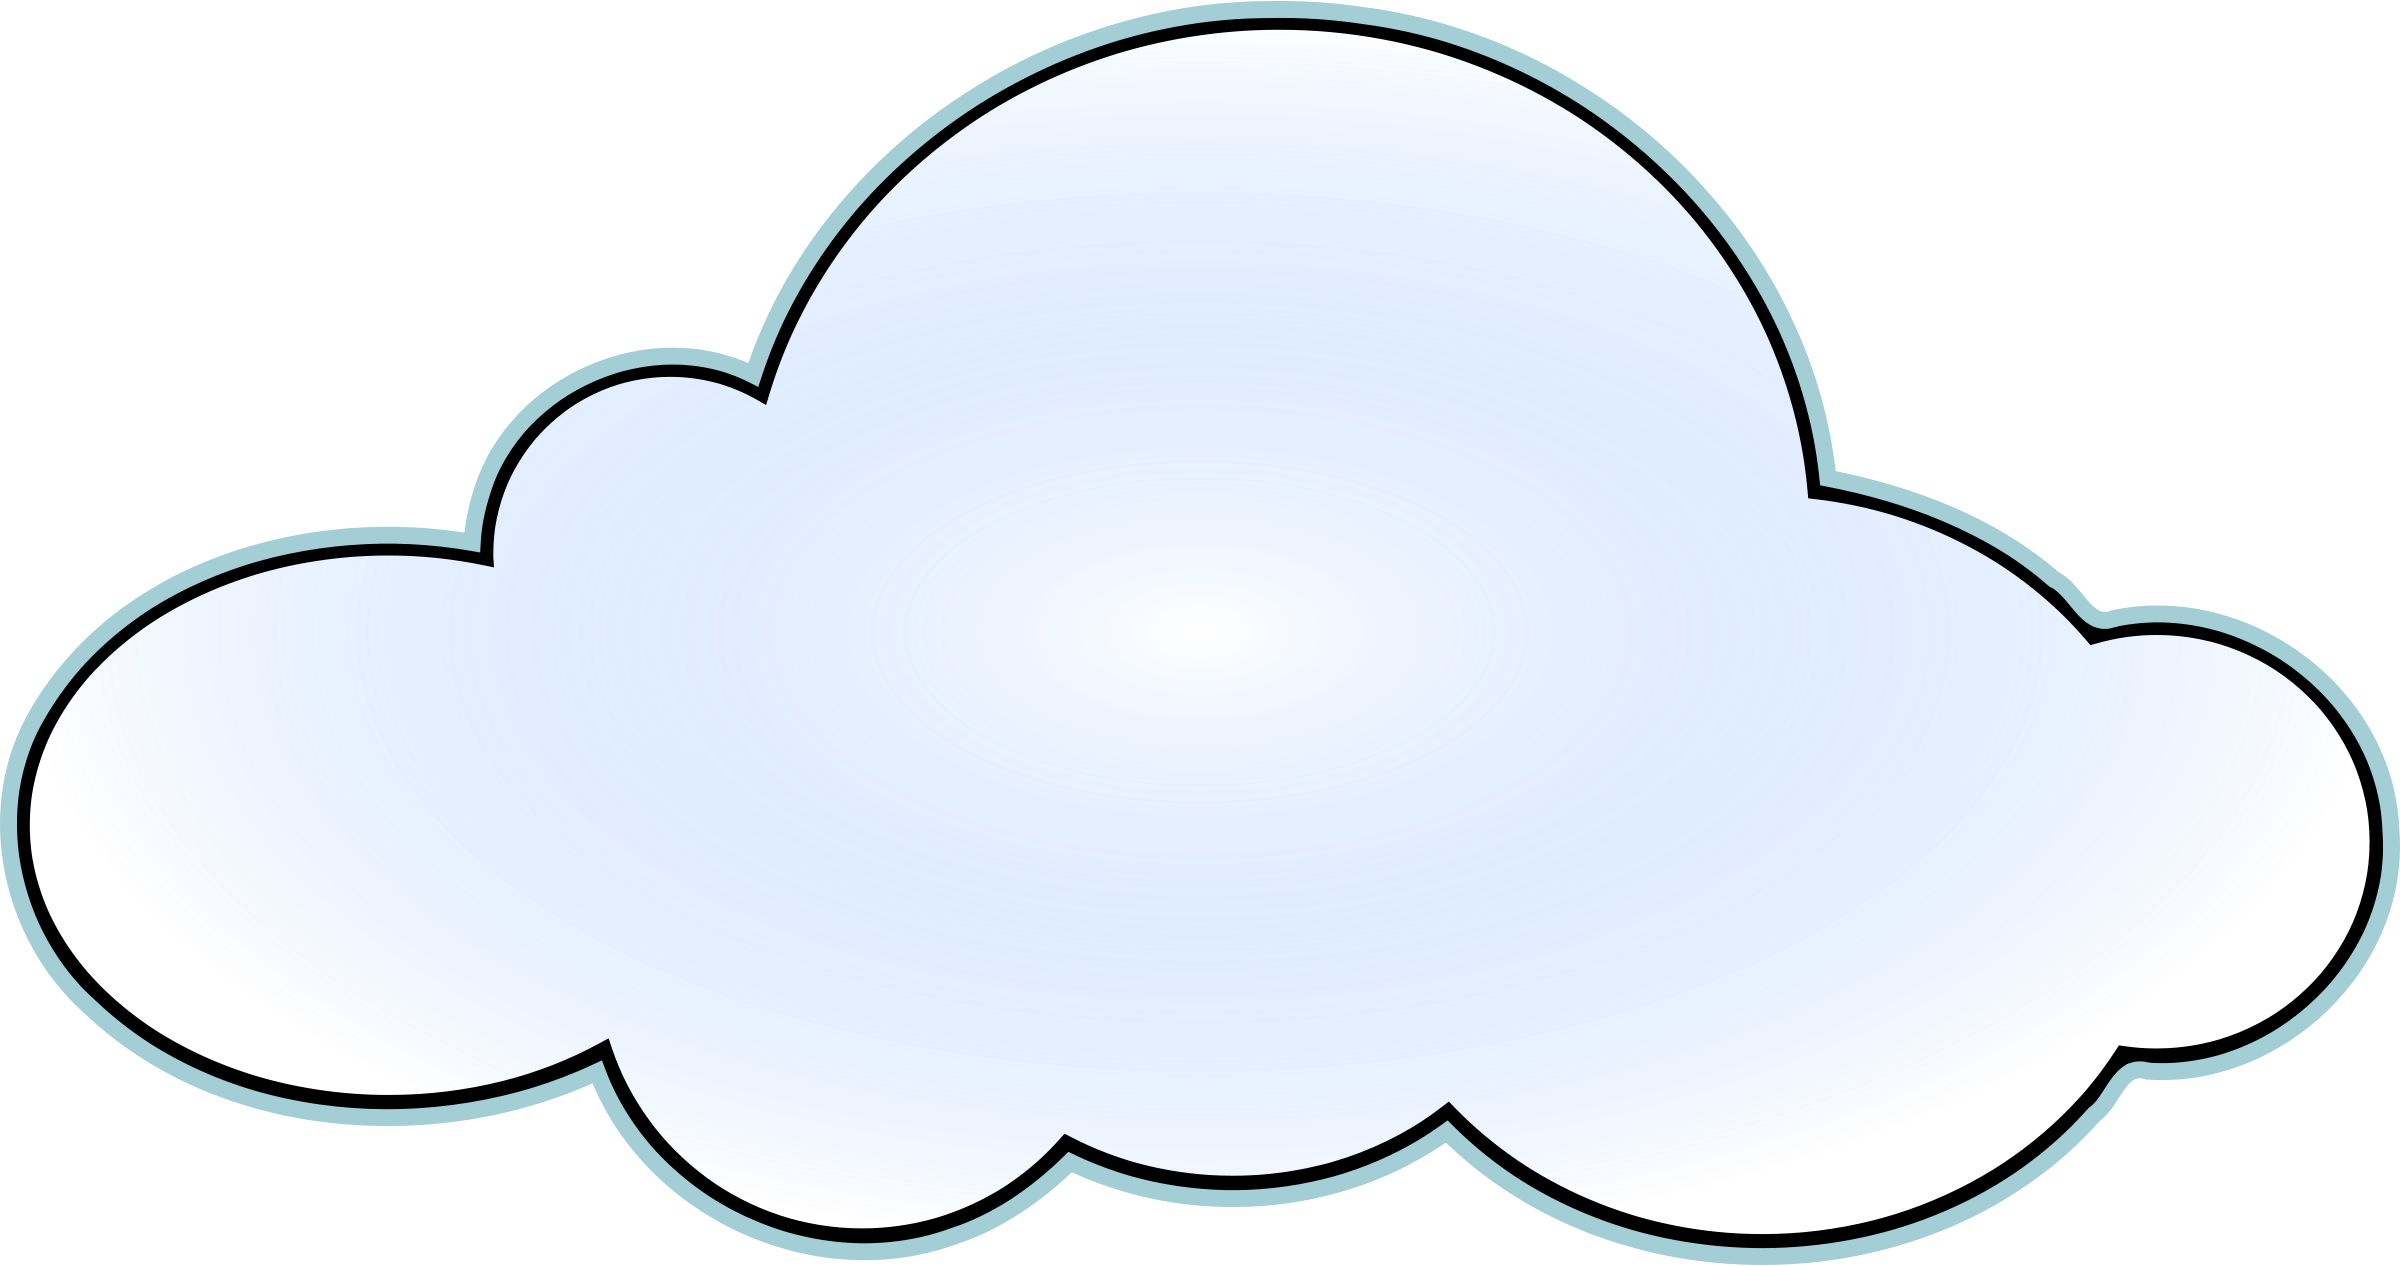 Cloud free clipart clipart royalty free library Cloud Clipart | Clipart Panda - Free Clipart Images clipart royalty free library